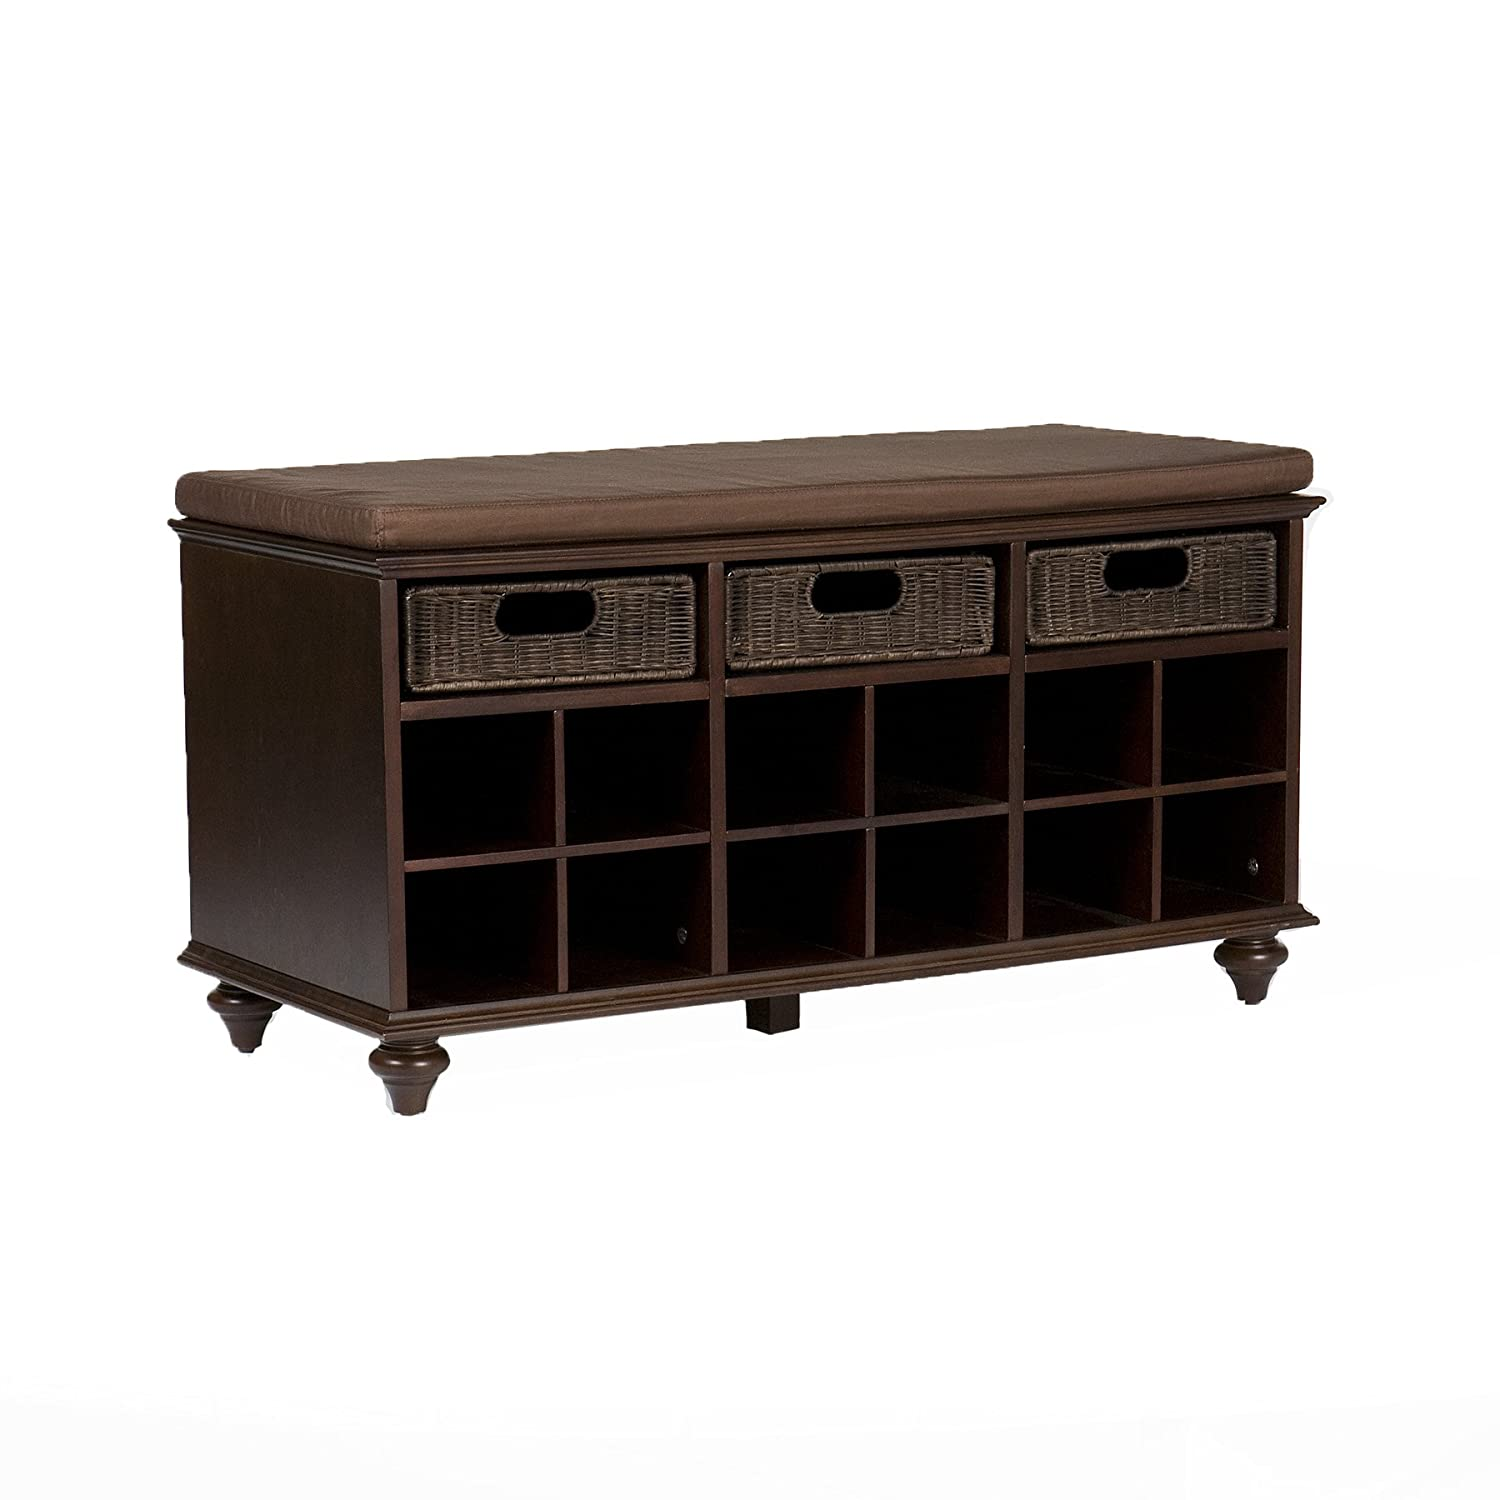 Ordinaire Amazon.com: Southern Enterprises Chelmsford Entryway Shoe Storage Bench,  Espresso Finish: Kitchen U0026 Dining